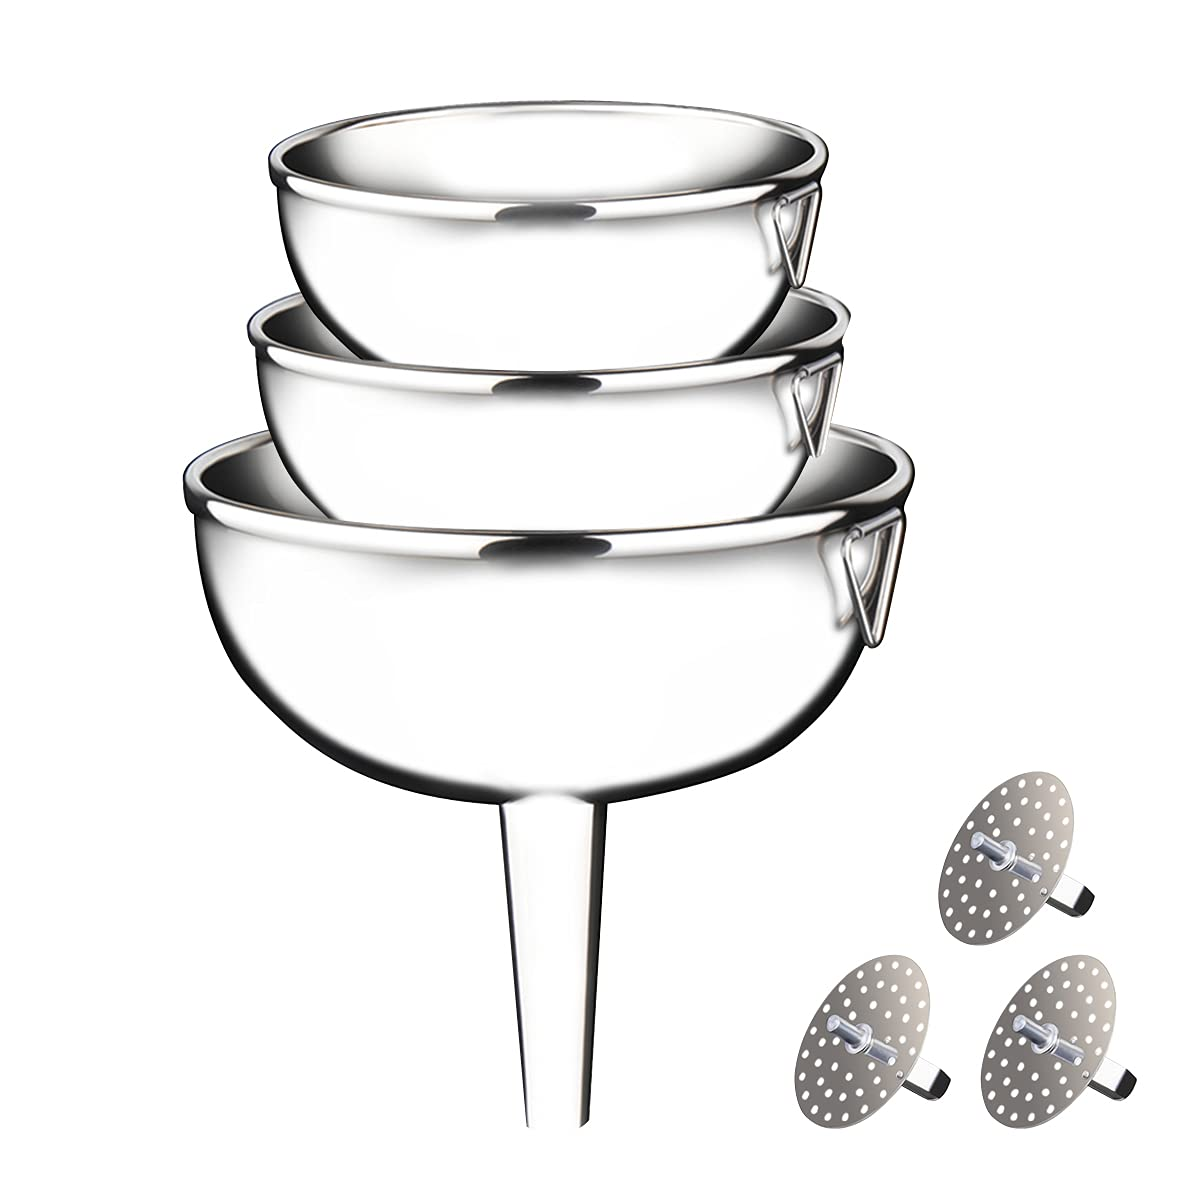 Large Funnels 3PCS Set Metal Stainless Steel with 3 Pack Removable Strainer, for Kitchen Transfer Liquid Filter Essential Cook Oils Fluid Spice Dry Ingredients Powder, Food Grade Dishwash Safe Durable